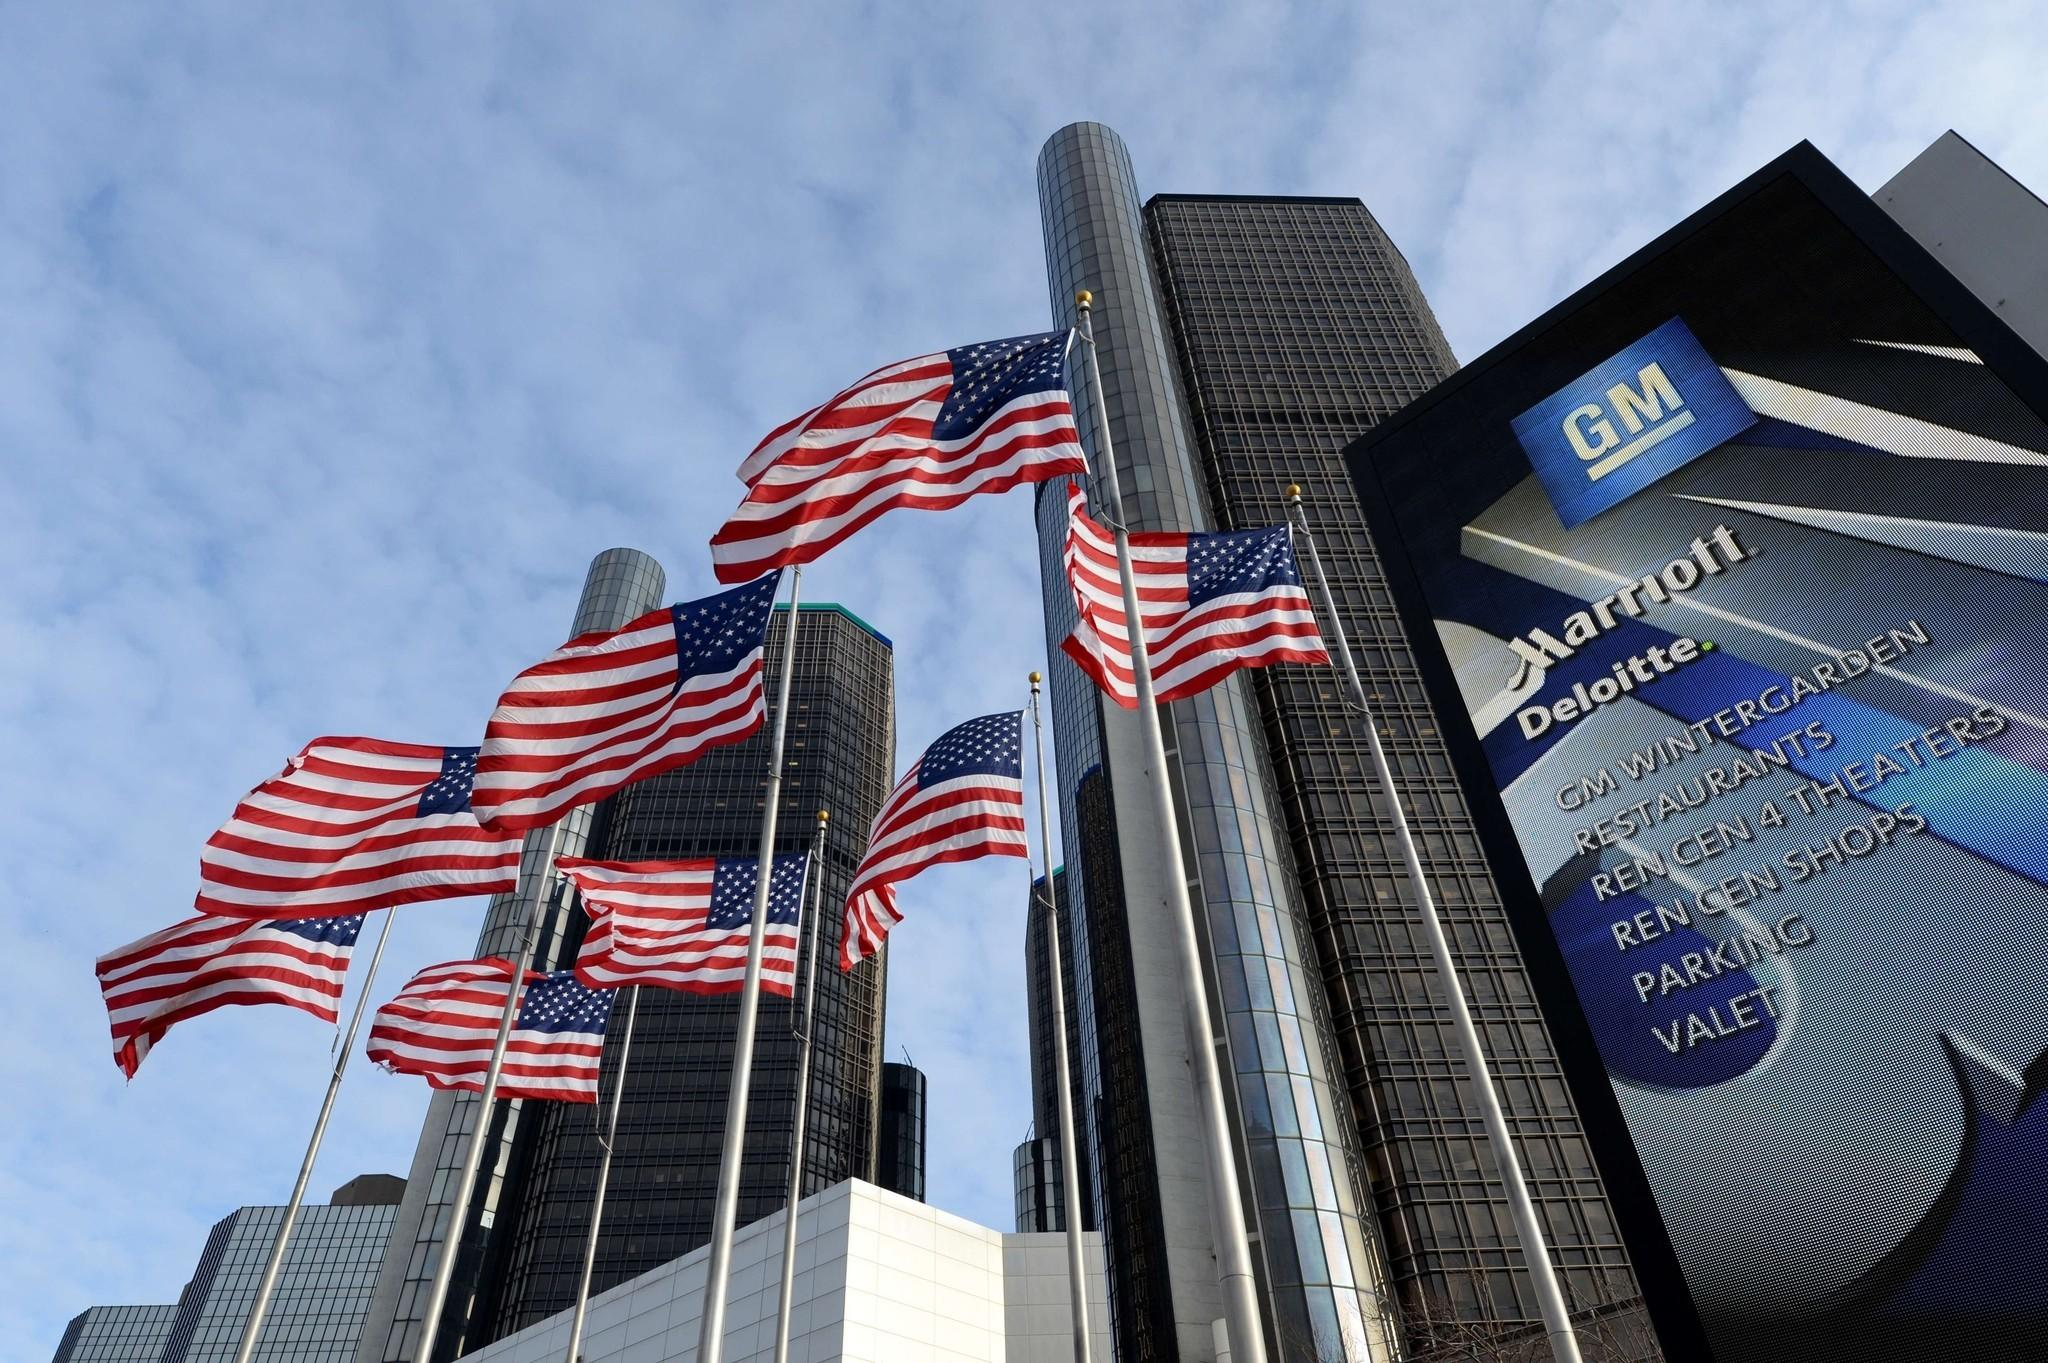 General Motors, the largest U.S. automaker, reported first-quarter profits plunged 88% after a series of vehicle recalls.